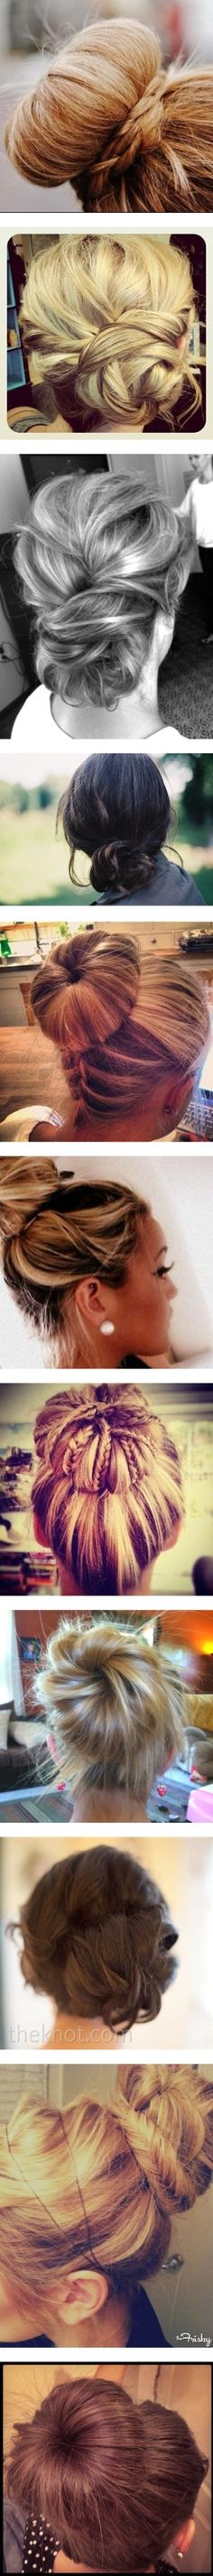 Different bun ideas. For days when you don't have to have the perfect ballet bun. #dancer #hair